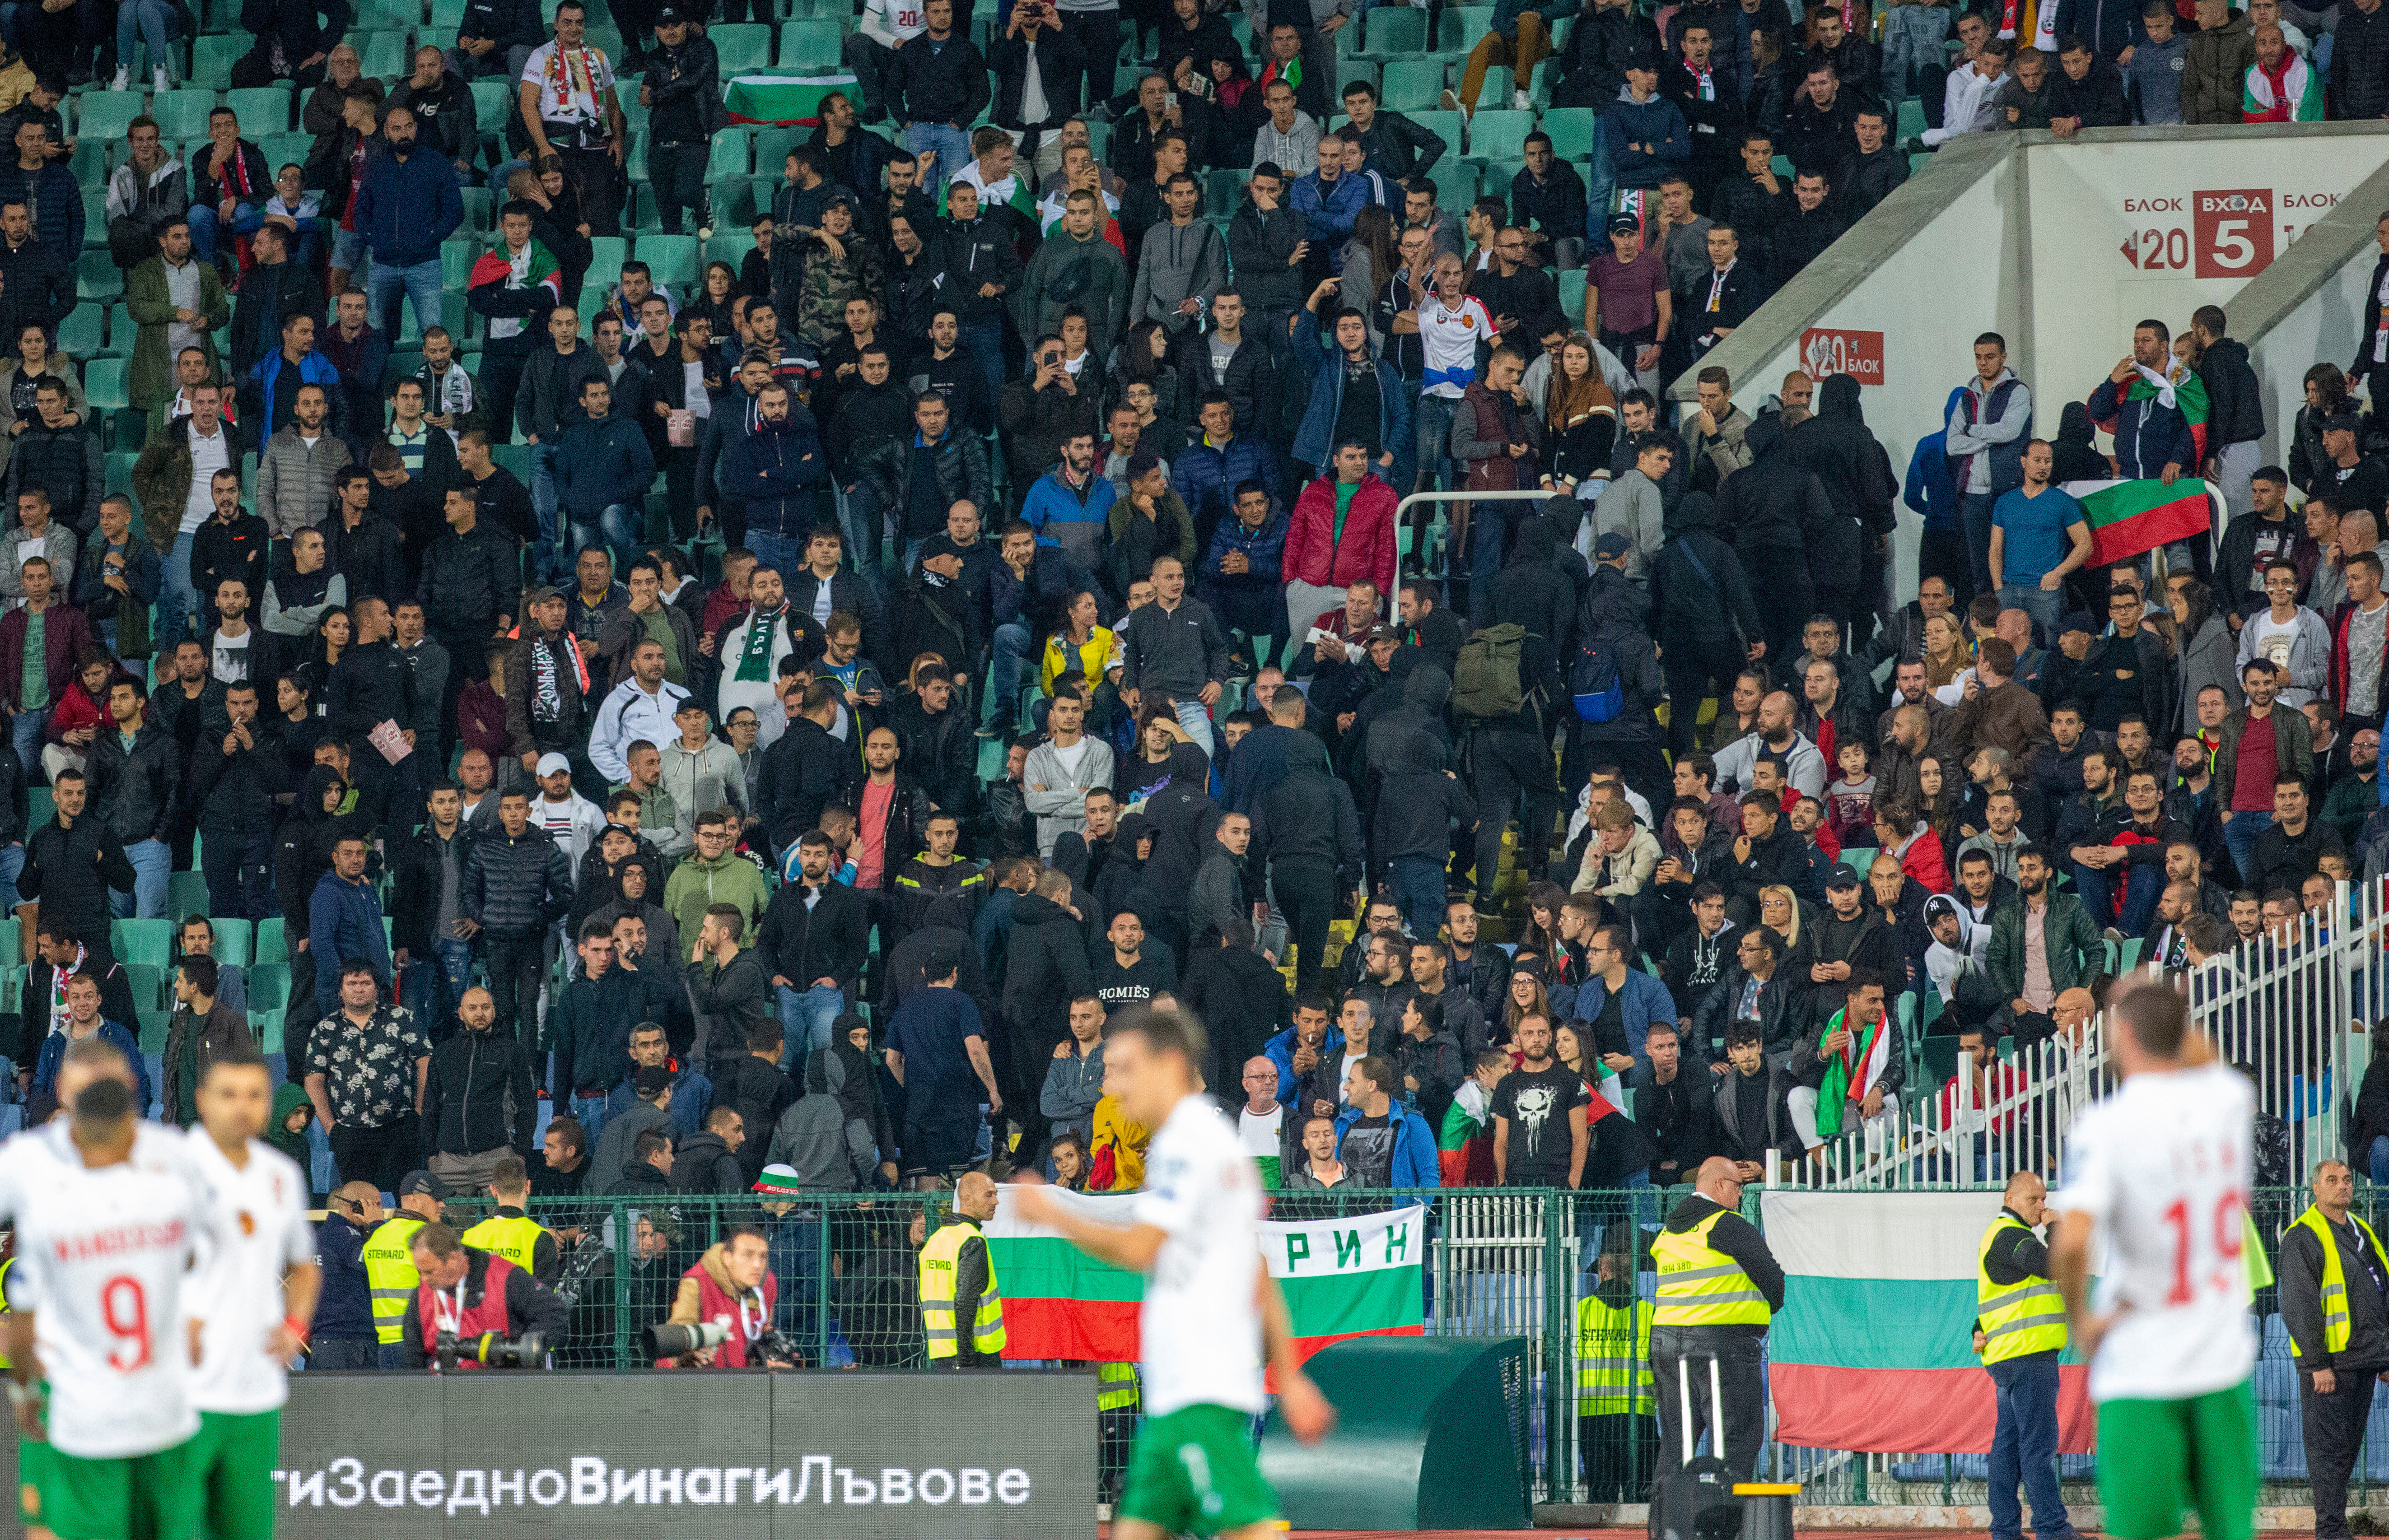 A group of supporters were ordered to leave the stadium at half-time - although racist abuse continued in the second half